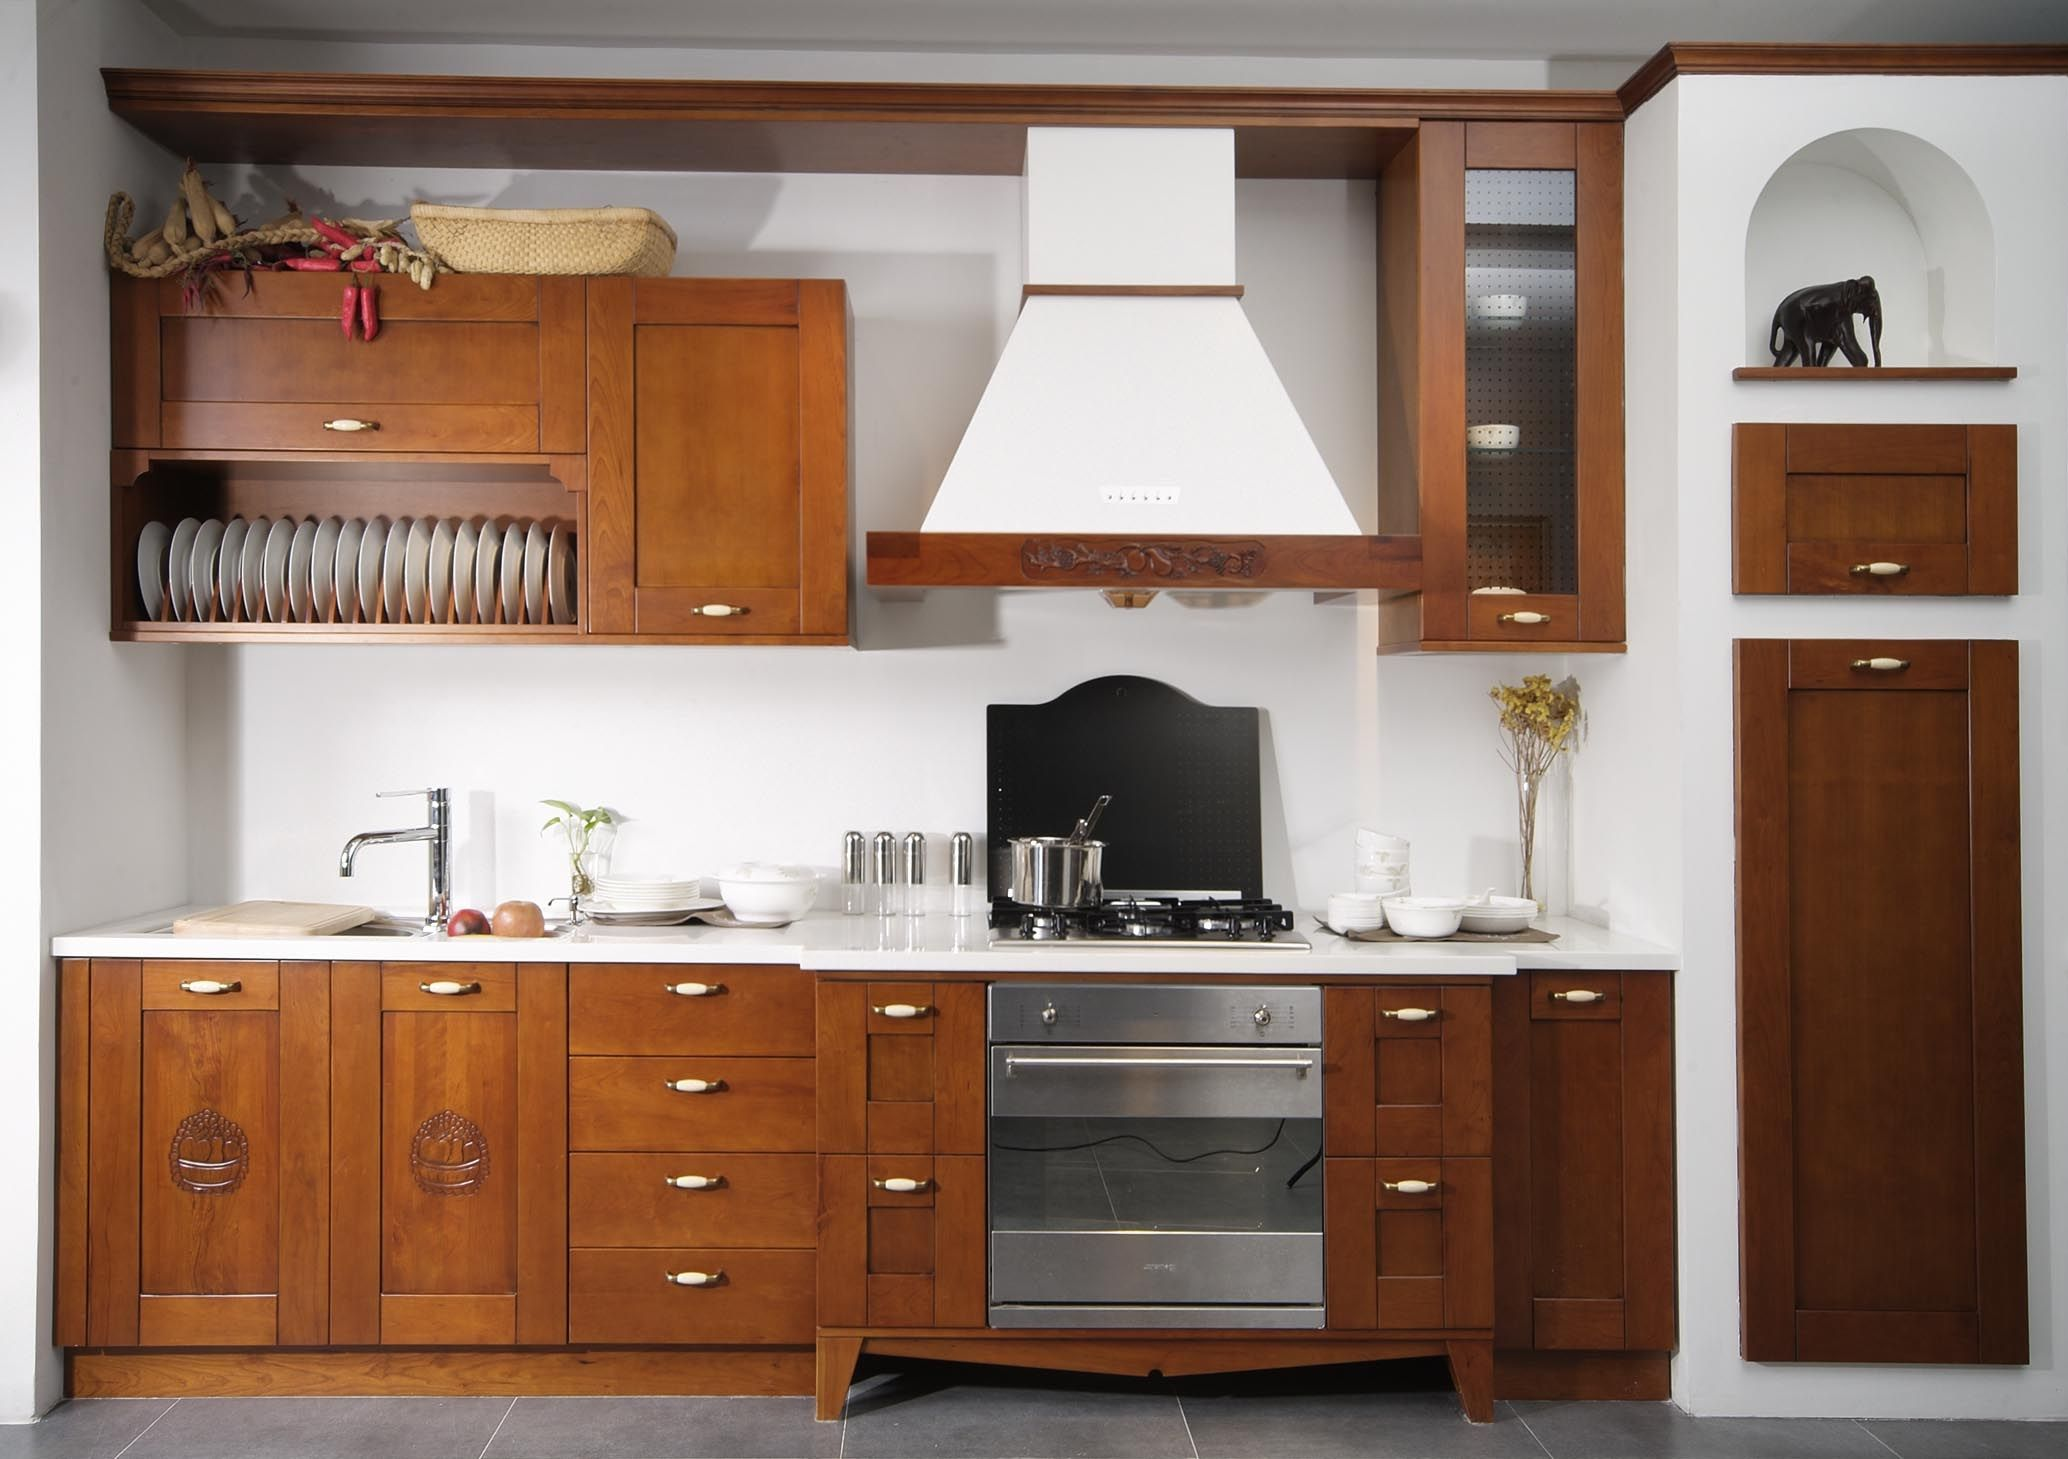 A Perfect Kitchen Design For A Granny Flat Or Small House